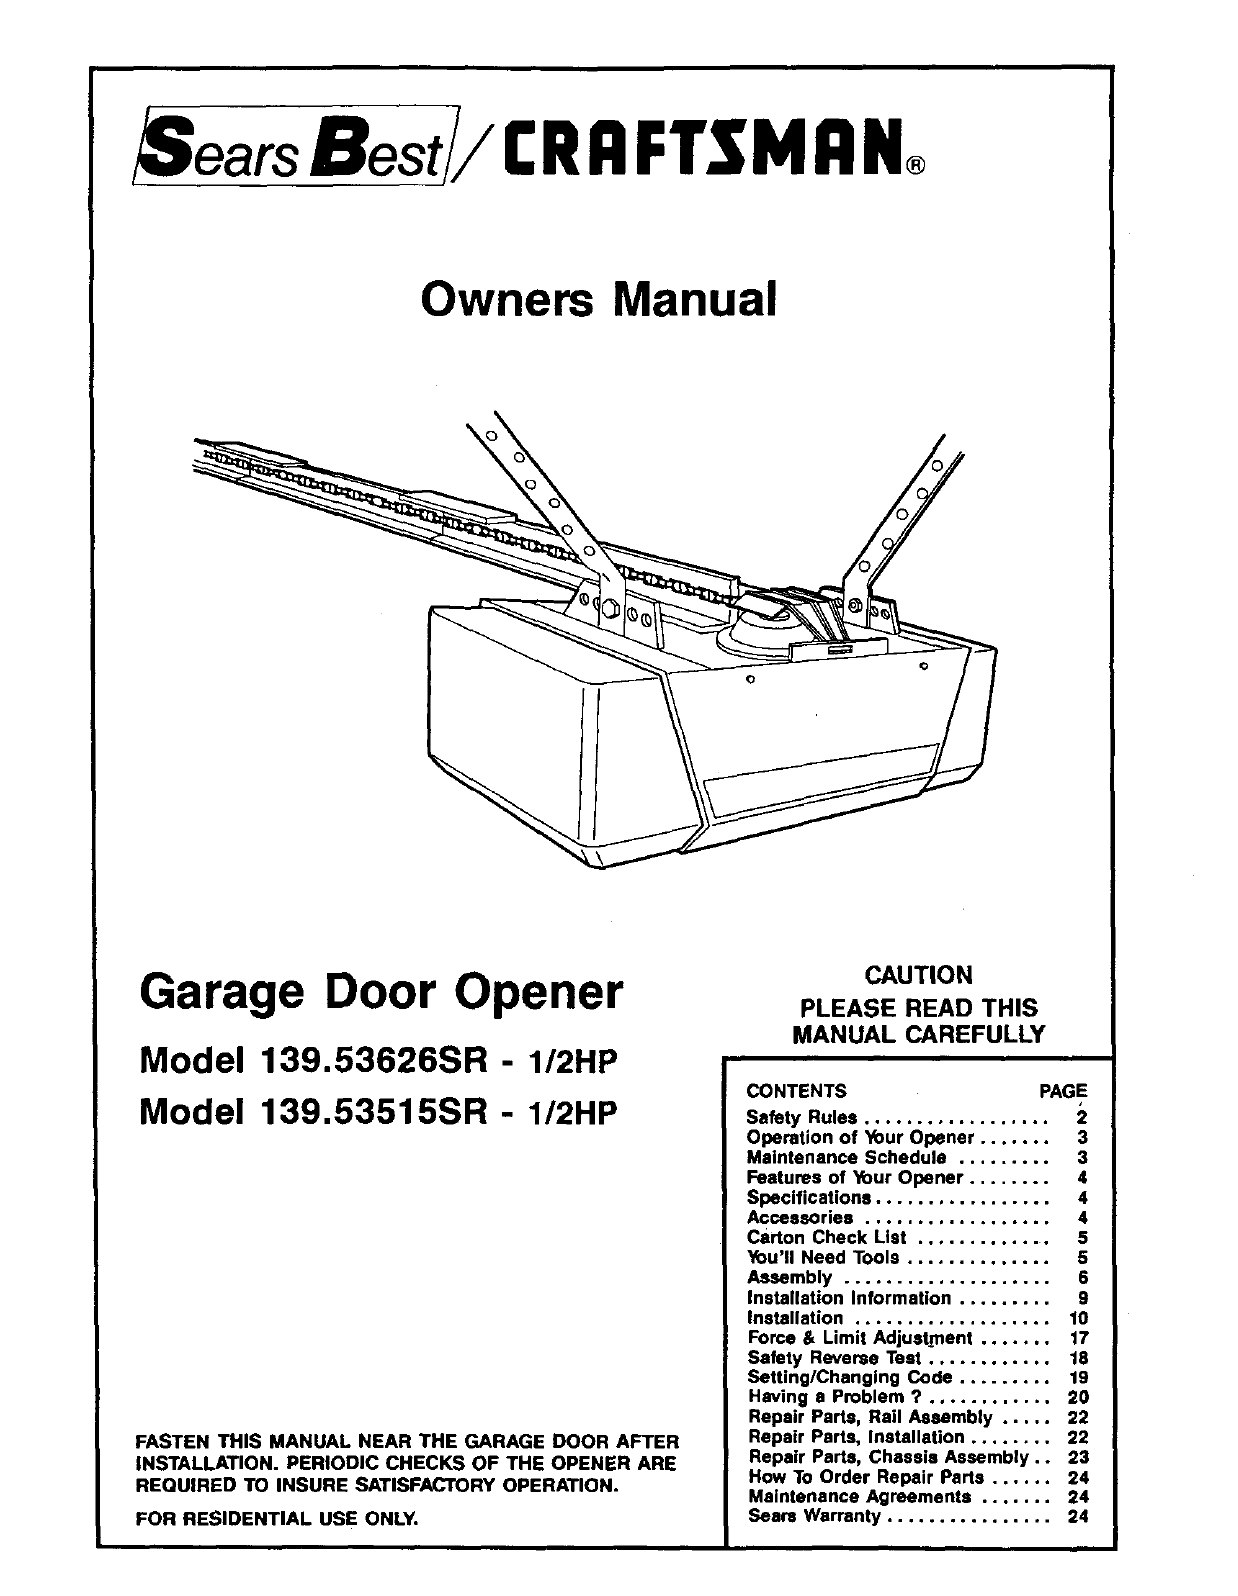 6e97bce9 7ab4 4d1d 9173 64e7868174d5 bg1 craftsman garage door opener 139 53515sr i 2hp user guide craftsman garage door opener sensor wiring diagram at creativeand.co